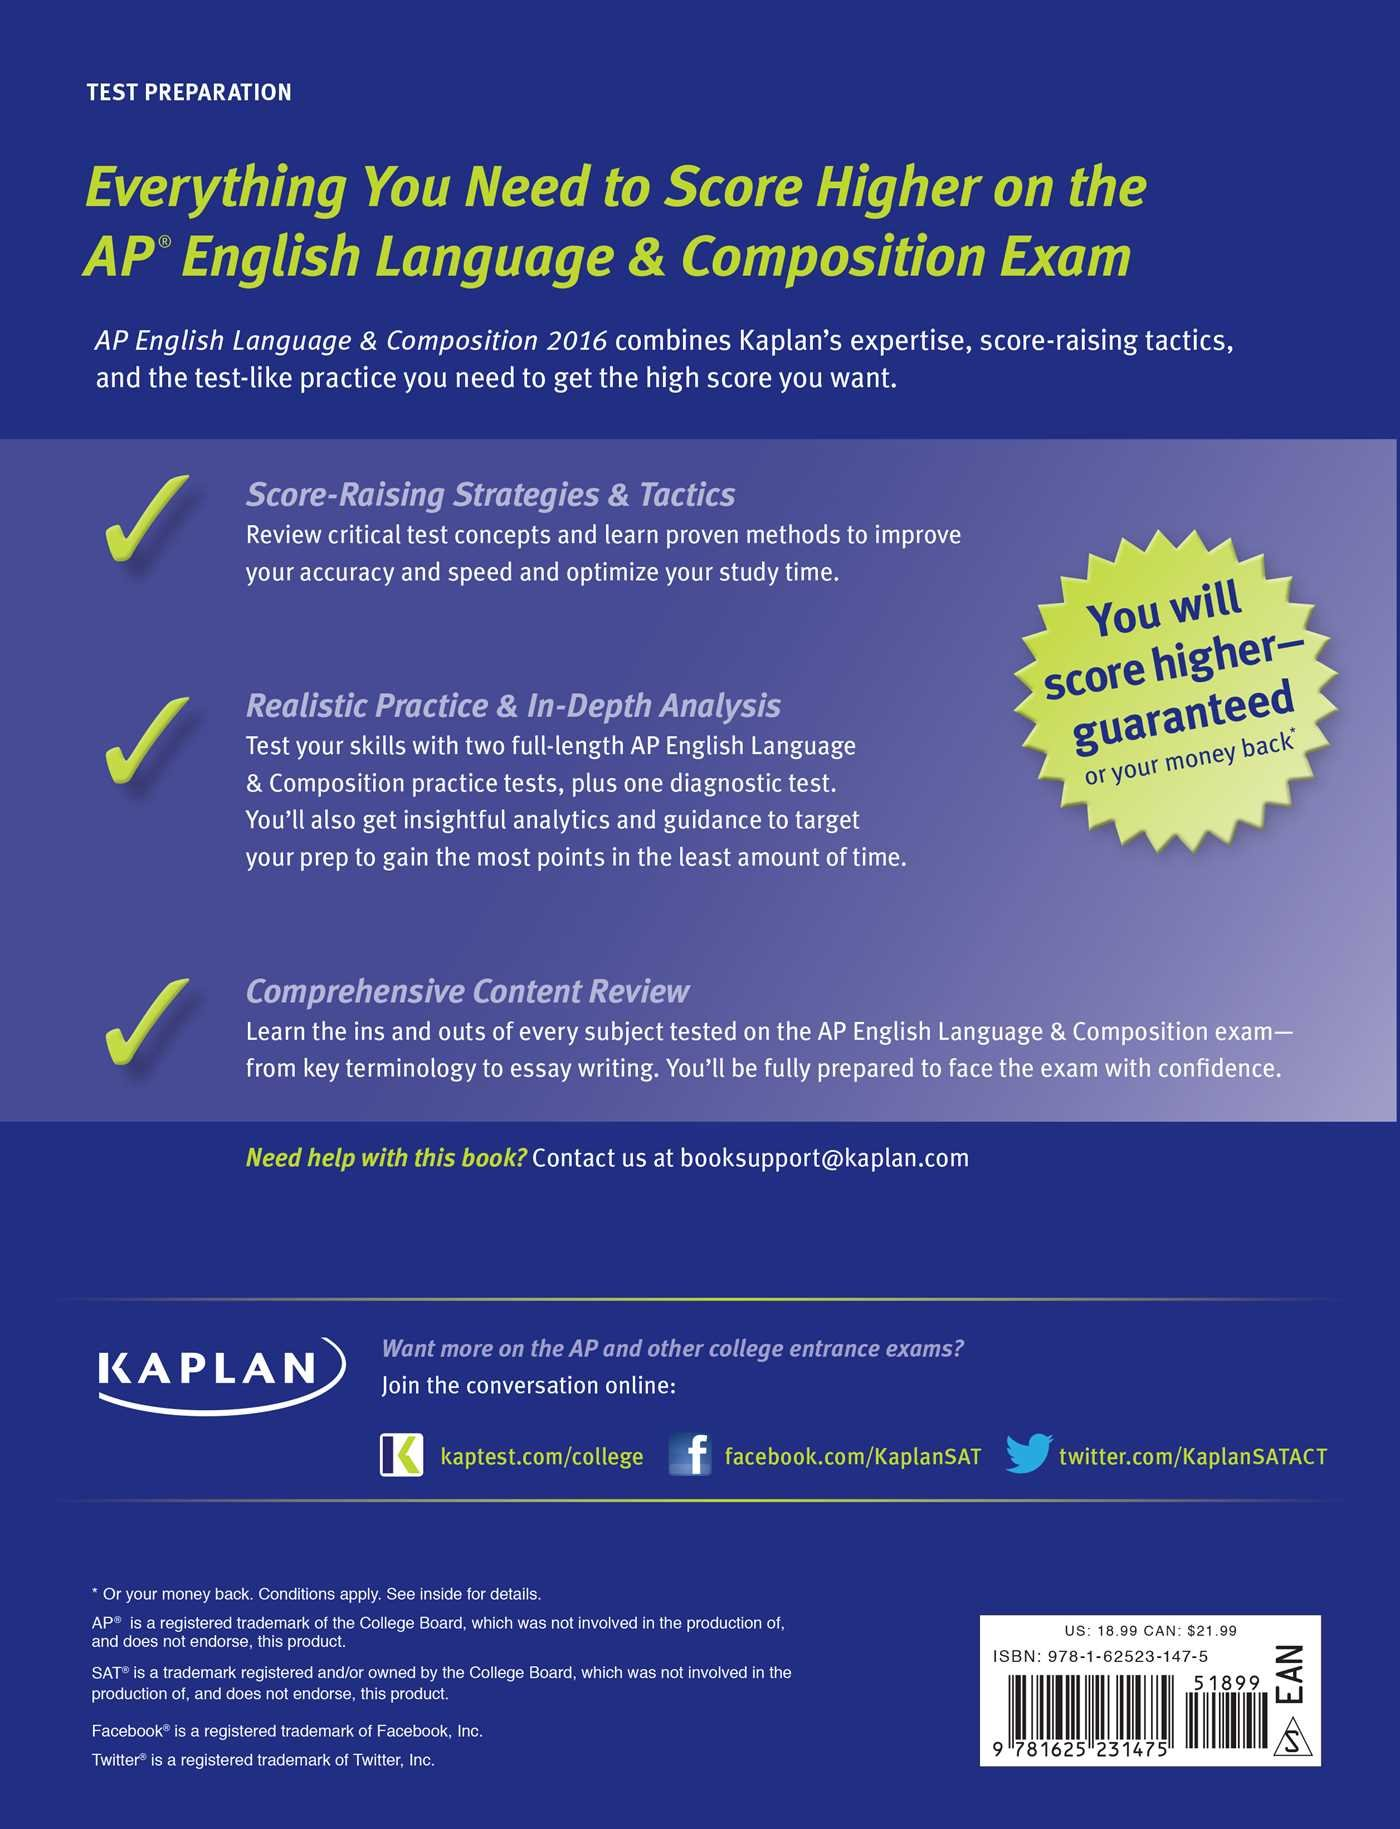 com kaplan ap english language composition 2016 kaplan  com kaplan ap english language composition 2016 kaplan test prep 9781625231475 denise pivarnik nova books